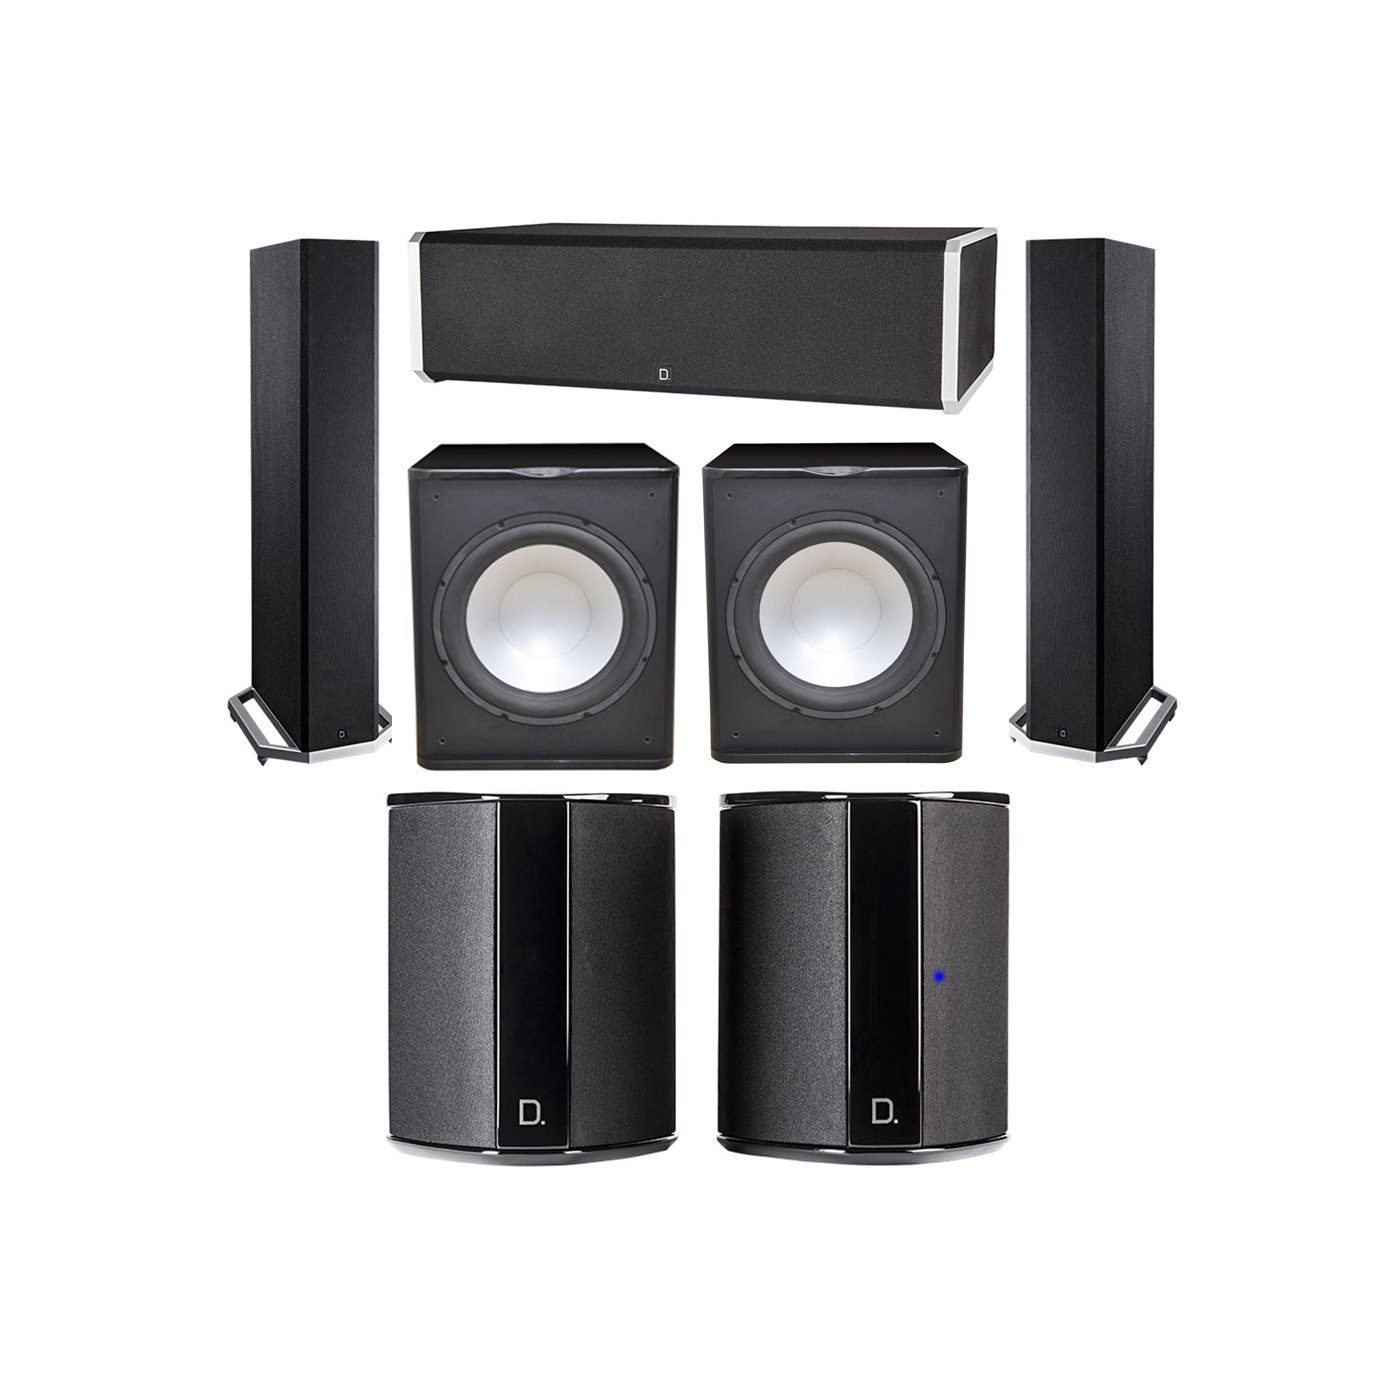 Definitive Technology 5.2 System with 2 BP9020 Tower Speakers, 1 CS9060 Center Channel Speaker, 2 SR9040 Surround Speaker, 2 Premier Acoustic PA-150 Subwoofer